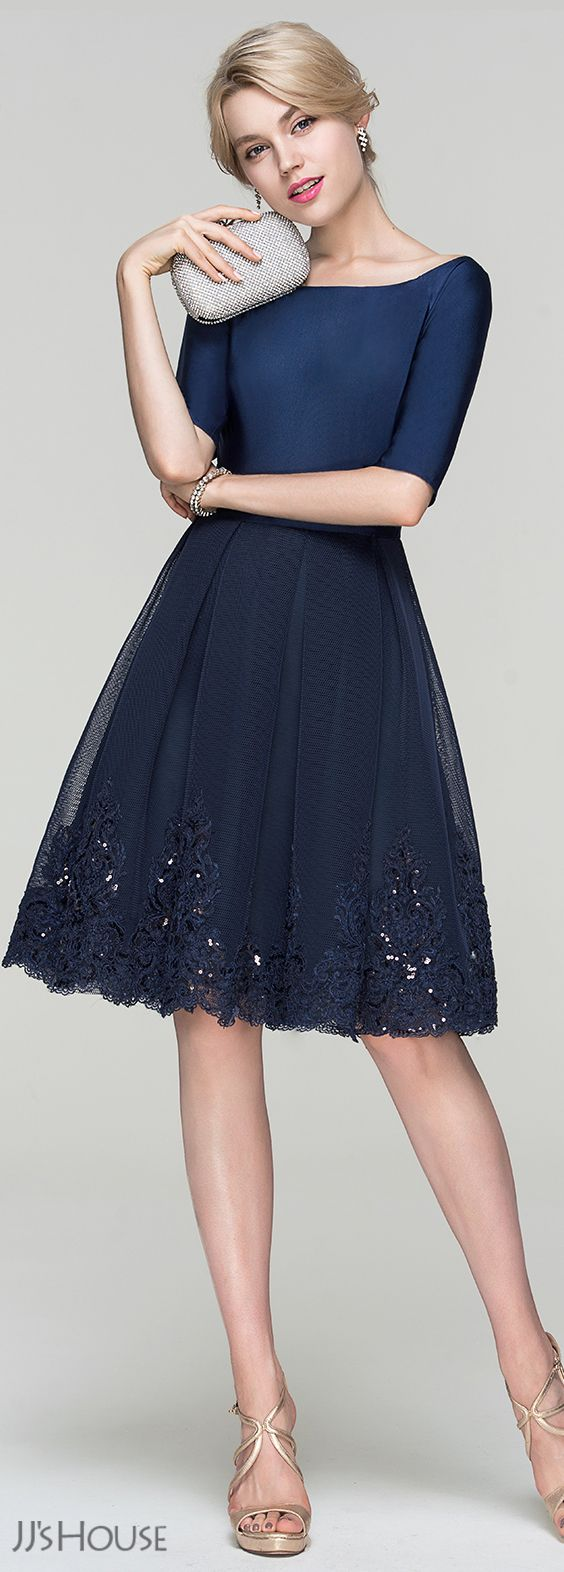 Midnight Blue Knee Length Dress